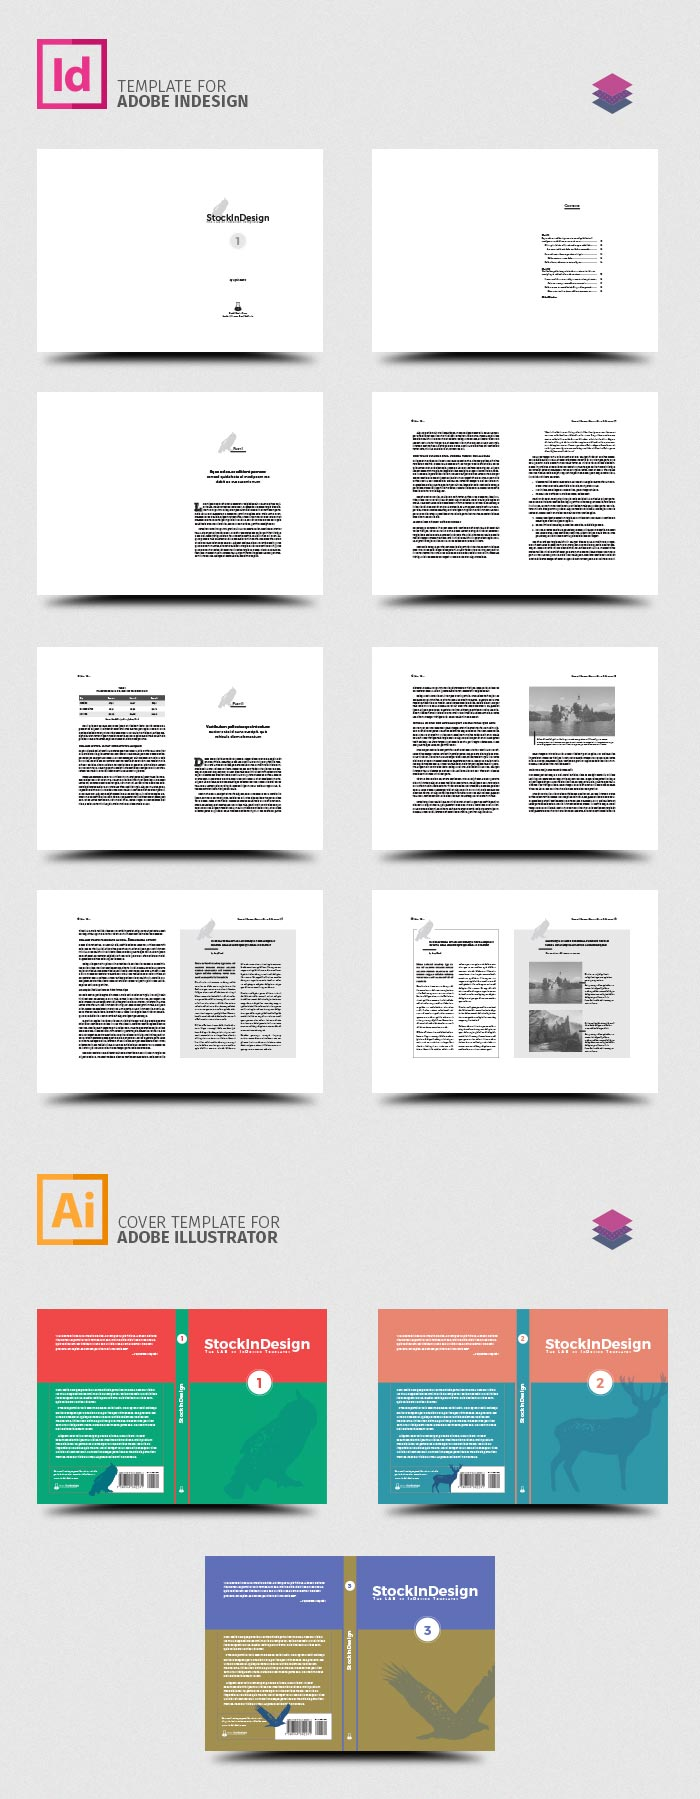 Indesign book template stockindesign for Adobe indesign templates free